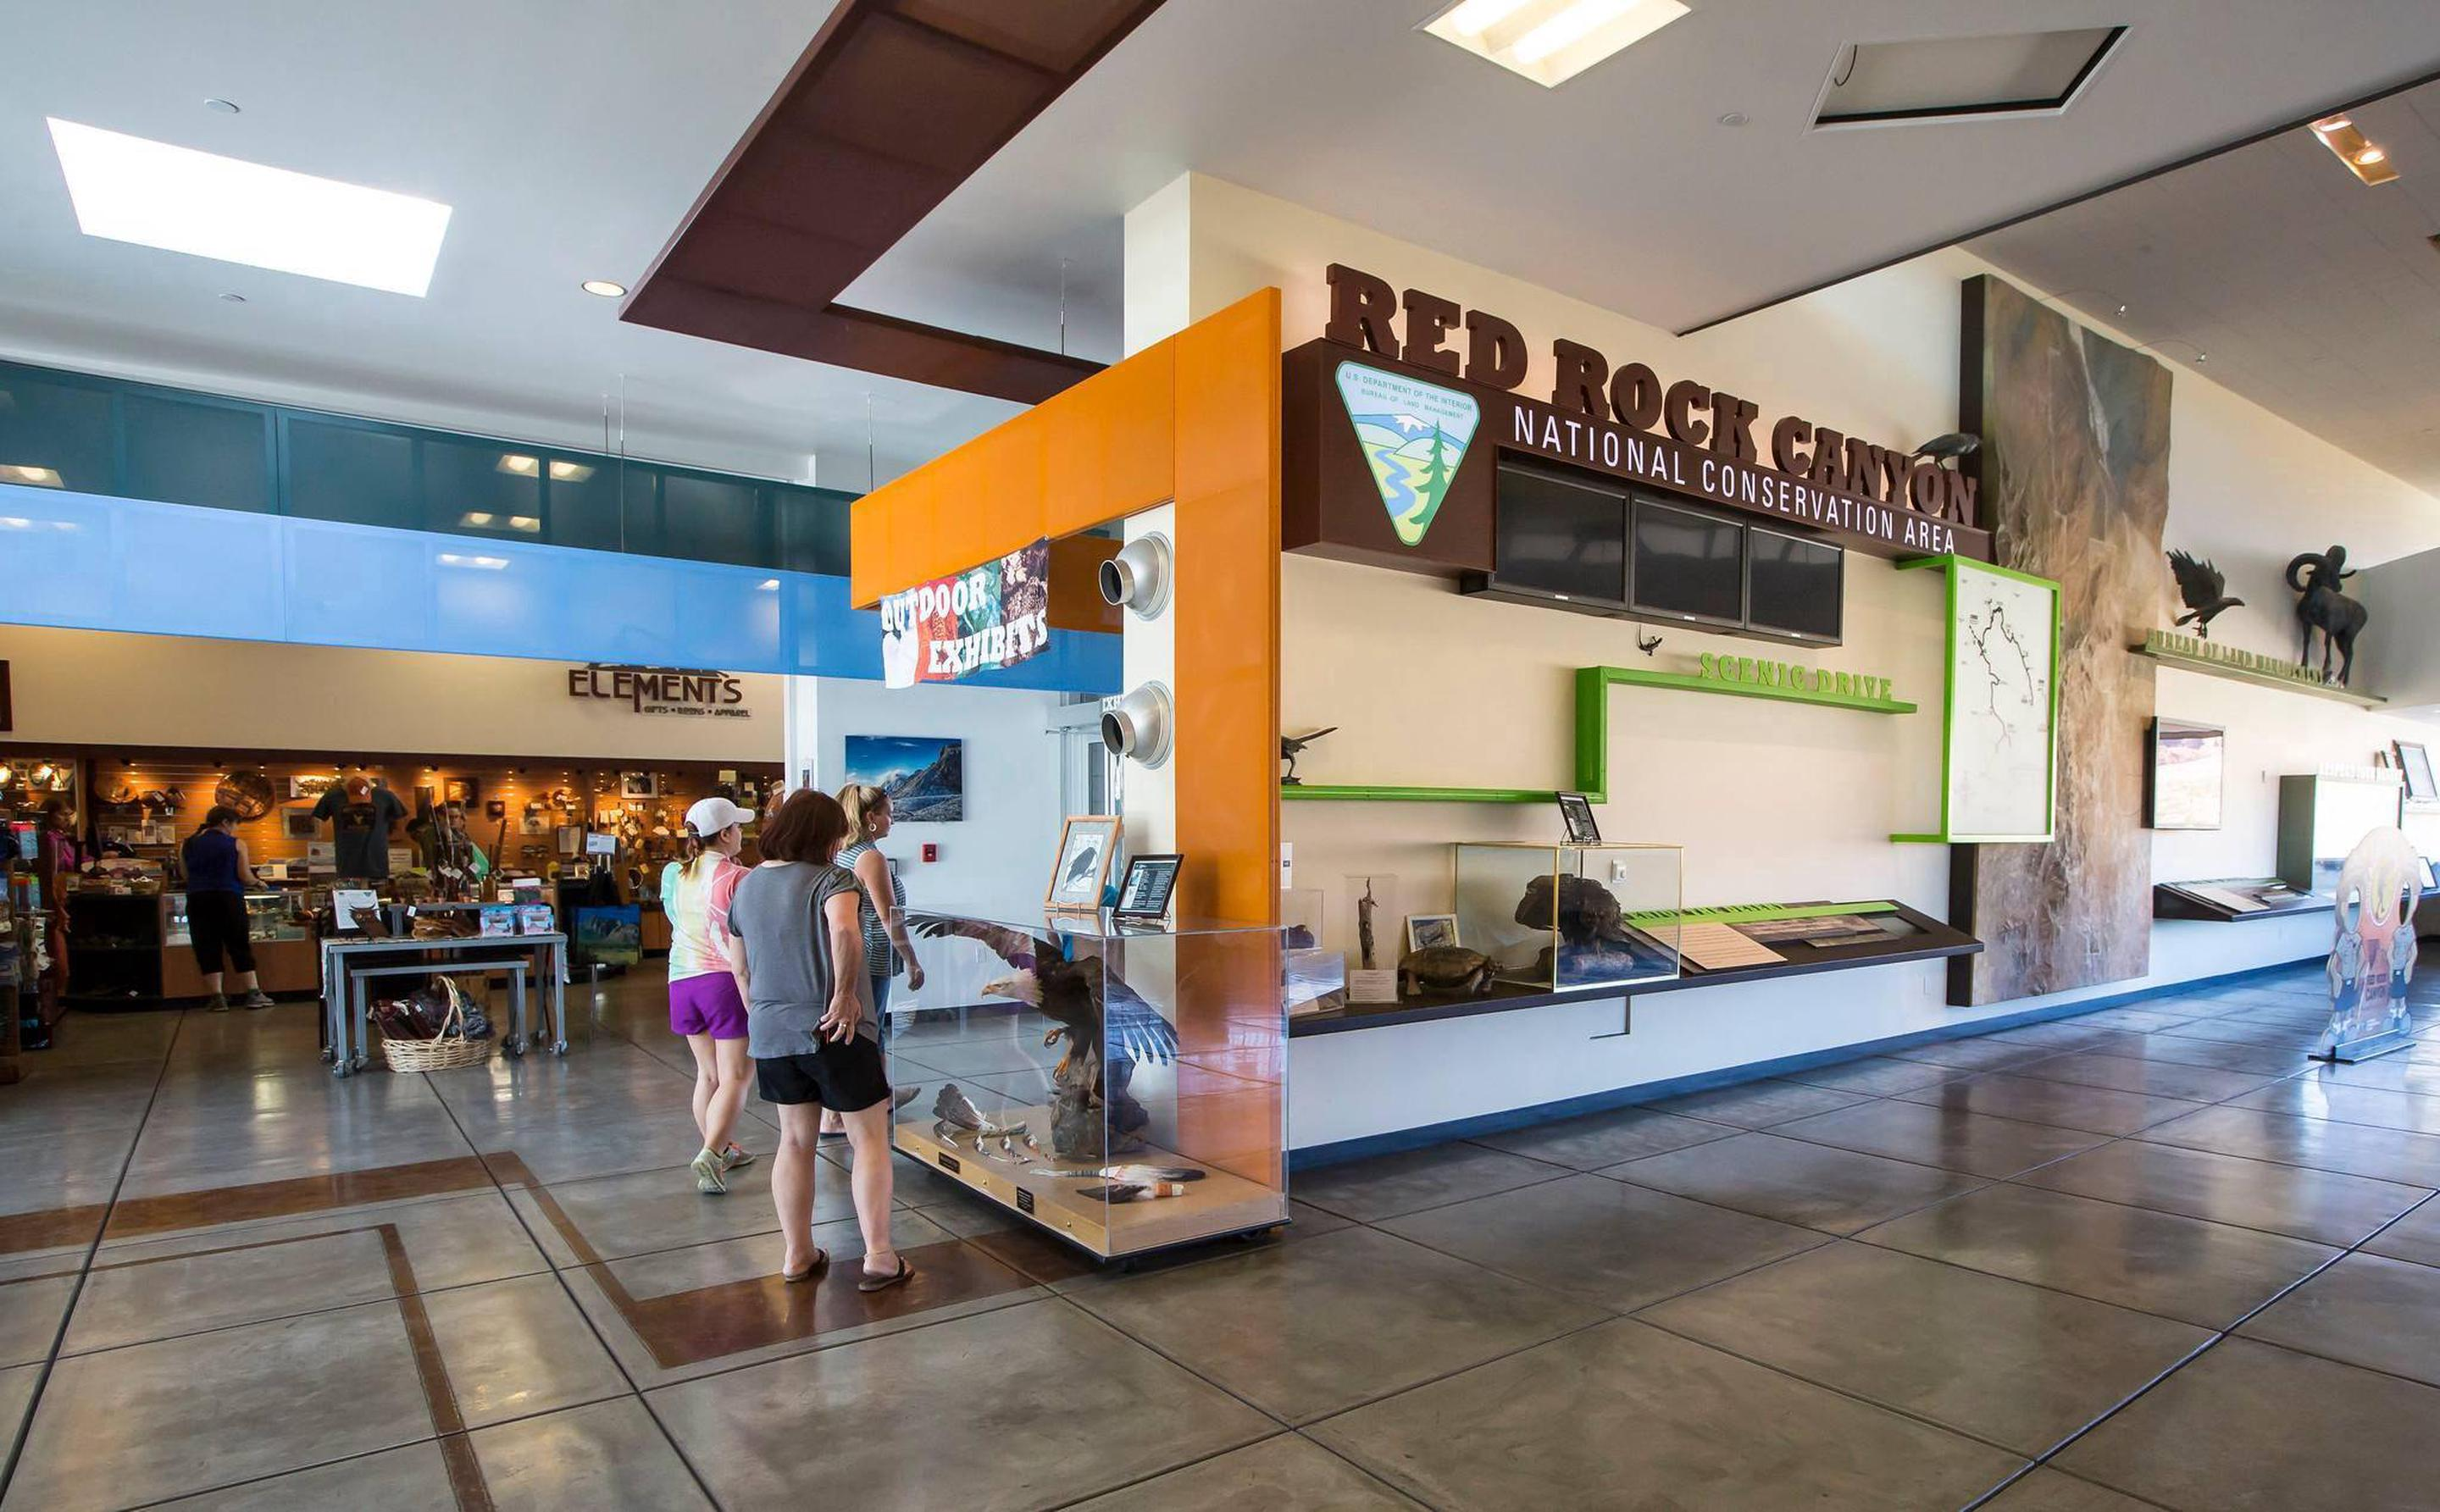 Visitors explore exhibits at the Red Rock Canyon National Conservation Area Visitor Center. Visitors view exhibits at the Visitor Center.